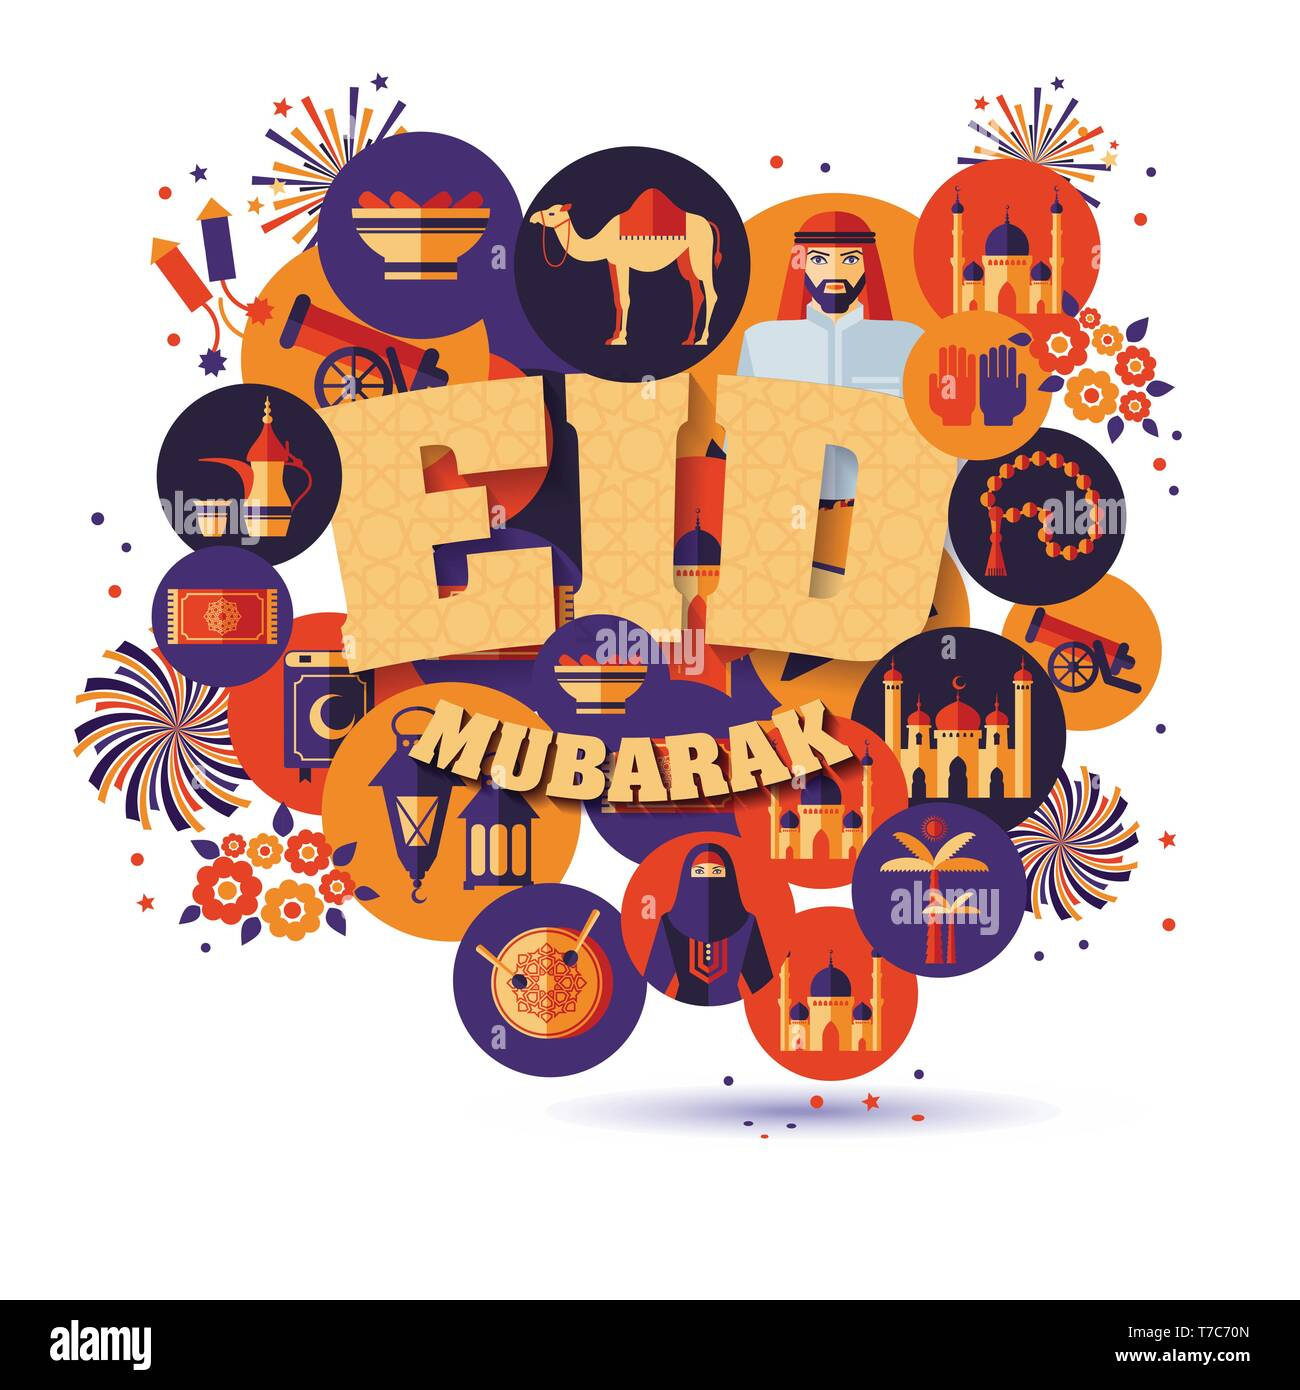 Eid Mubarak Illustration Of Islam Icons Stock Vector Image Art Alamy